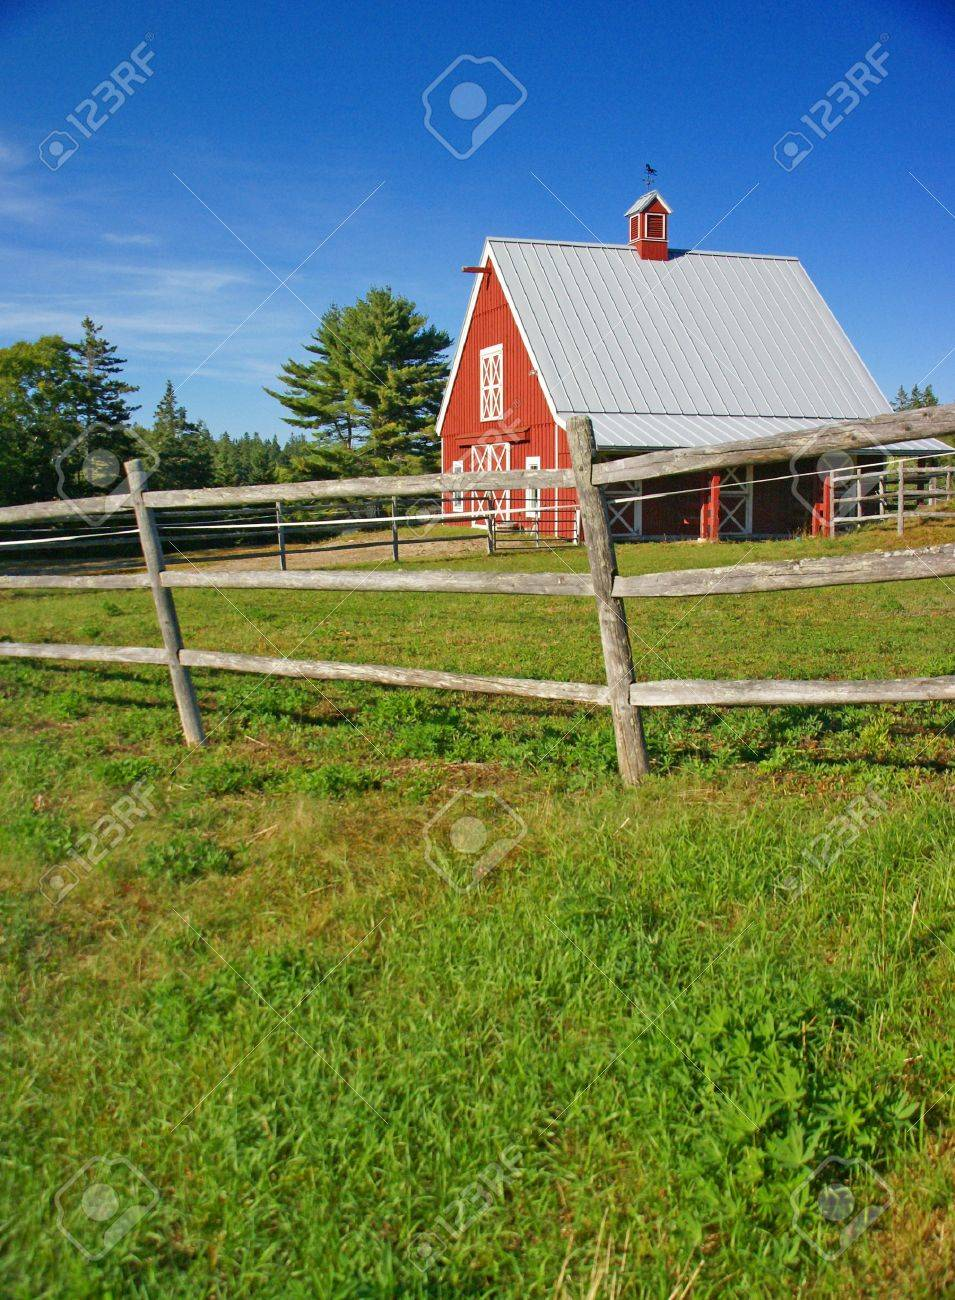 New England red barn and fence against blue sky.Mount Desert Island, Acadia National park, Maine, New England Stock Photo - 7258951